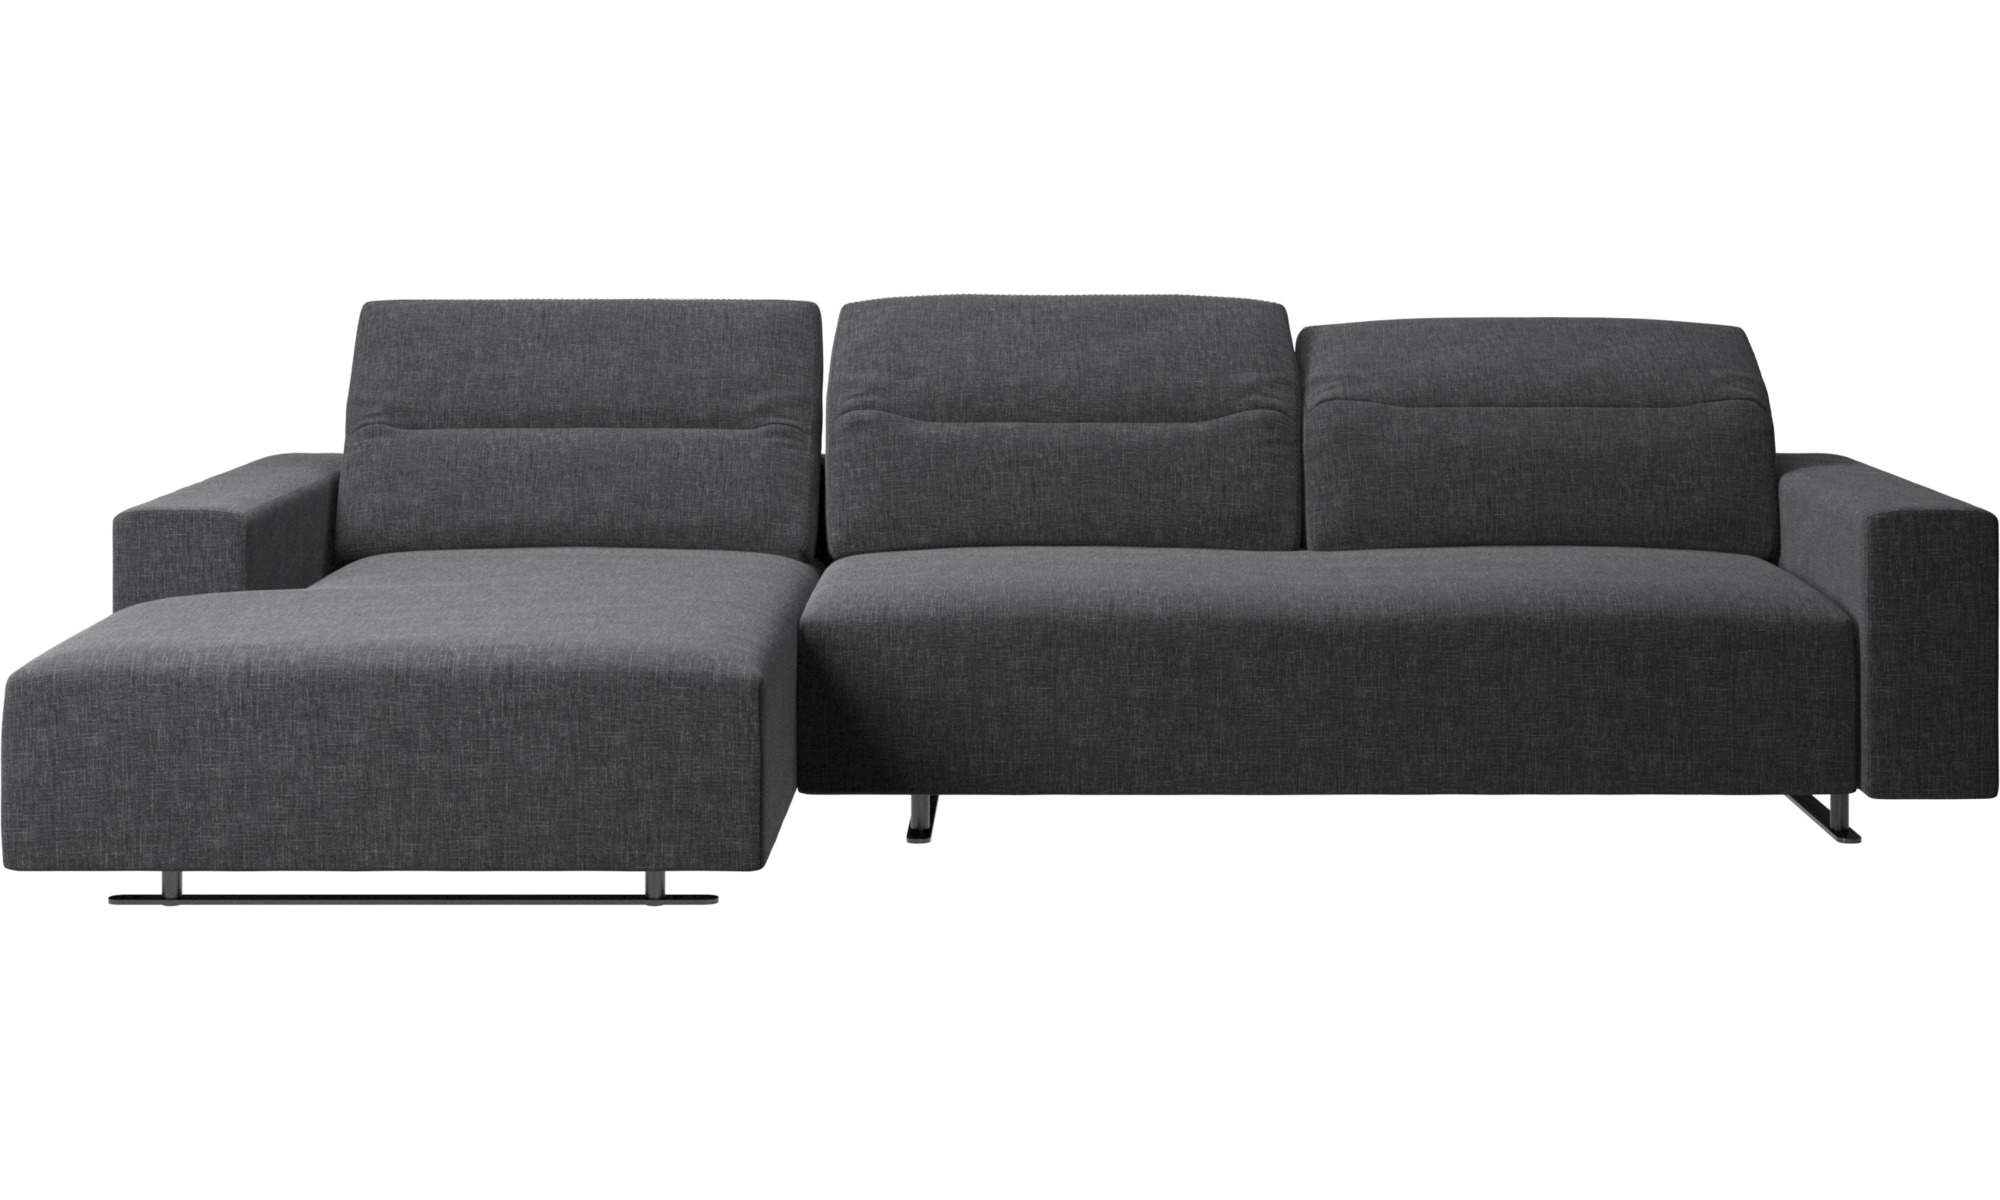 - Chaise Longue Sofas - Hampton Sofa With Adjustable Back And